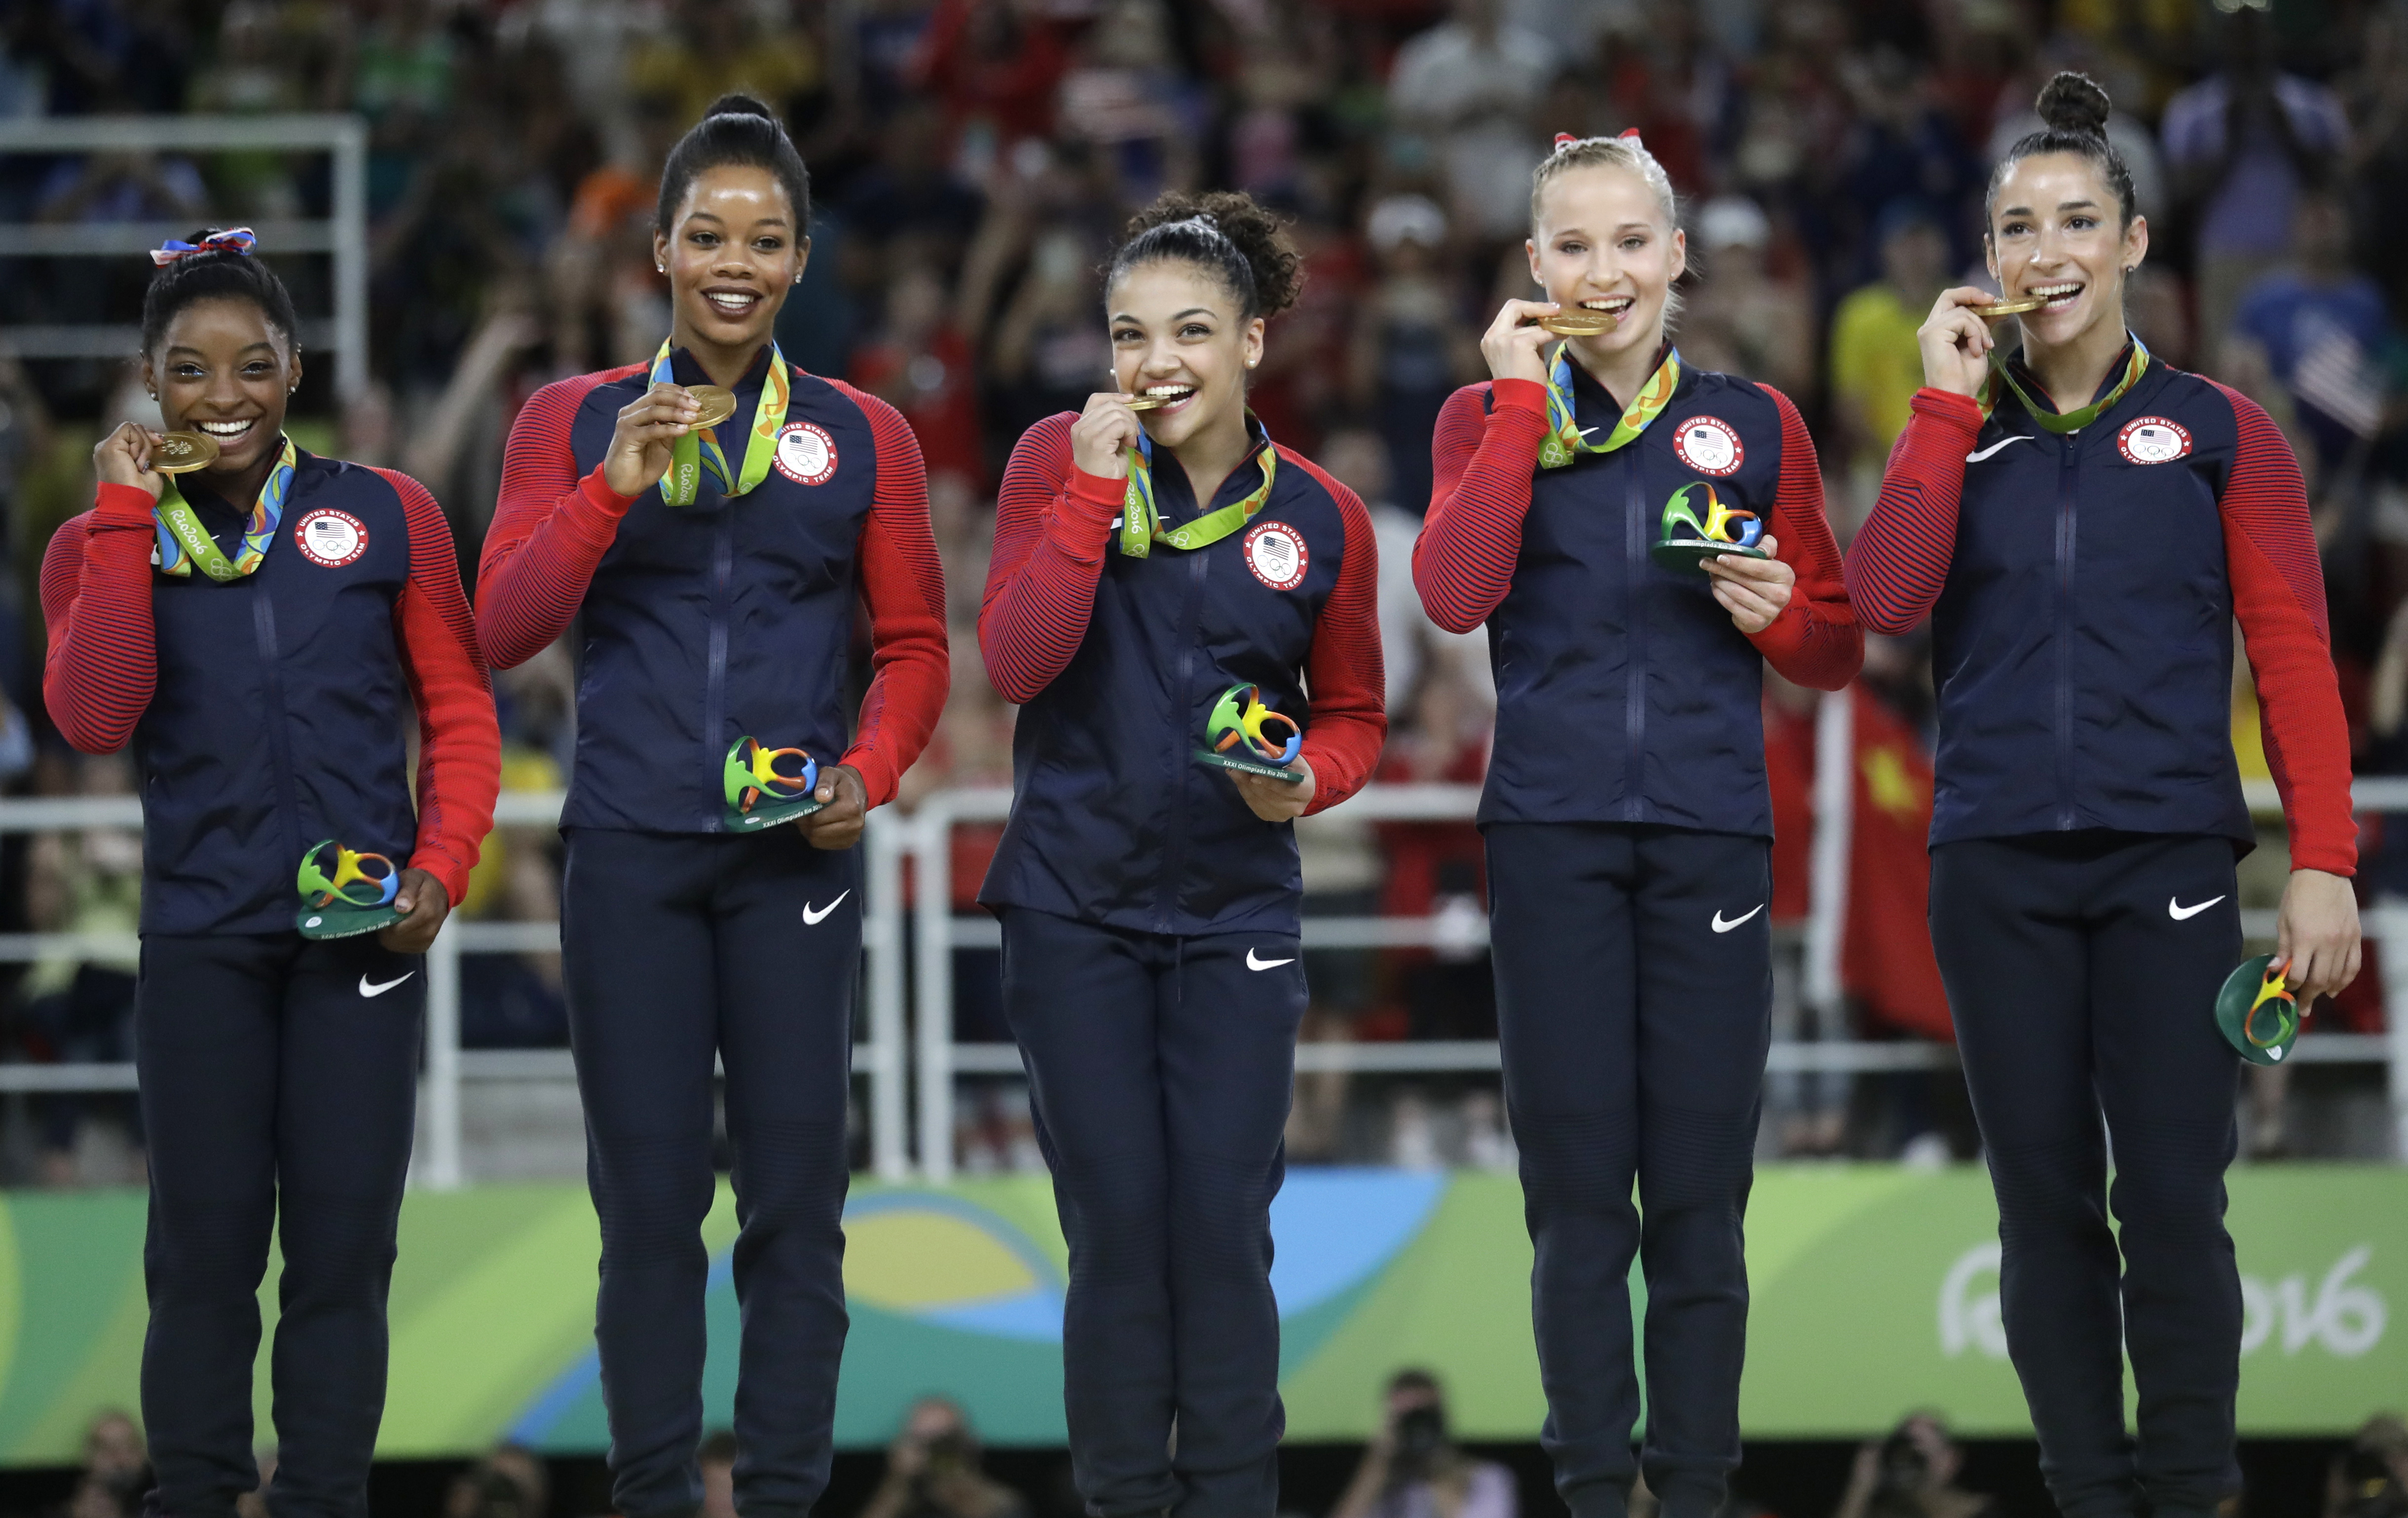 FILE - In this Aug. 9, 2016 file photo, U.S. gymnasts, from left, Simone Biles, Gabrielle Douglas, Lauren Hernandez, Madison Kocian and Aly Raisman hold their gold medals during the medal ceremony for the artistic gymnastics women's team at the 2016 Summe